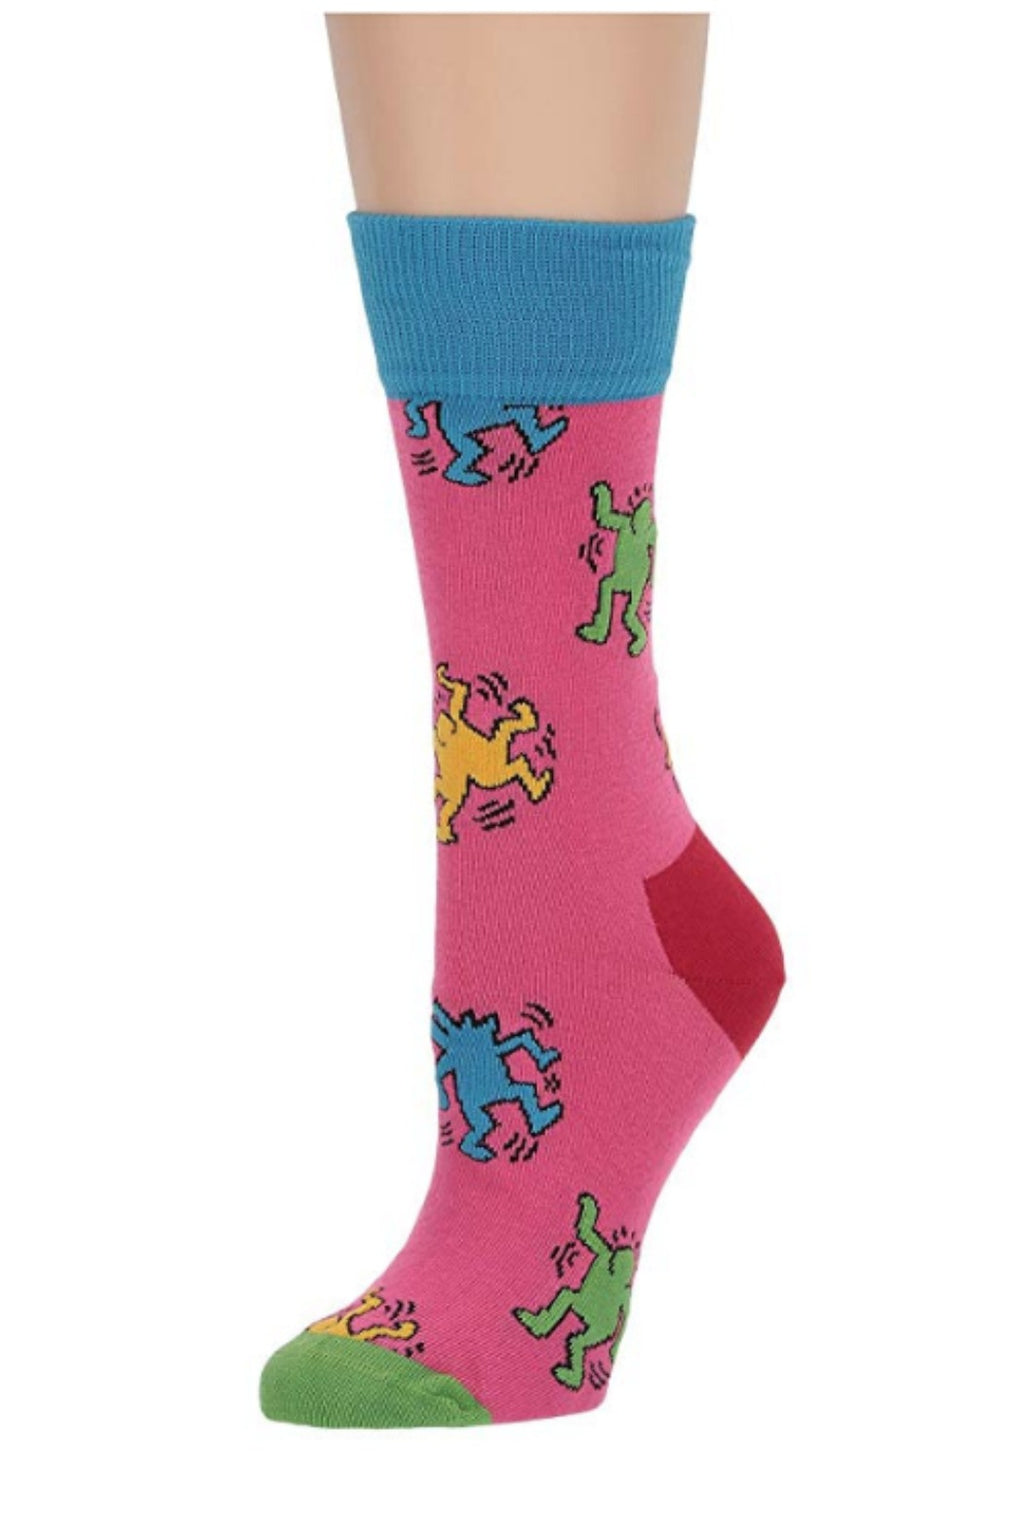 Happy Socks Keith Haring Dancing Socks - Dark Pink